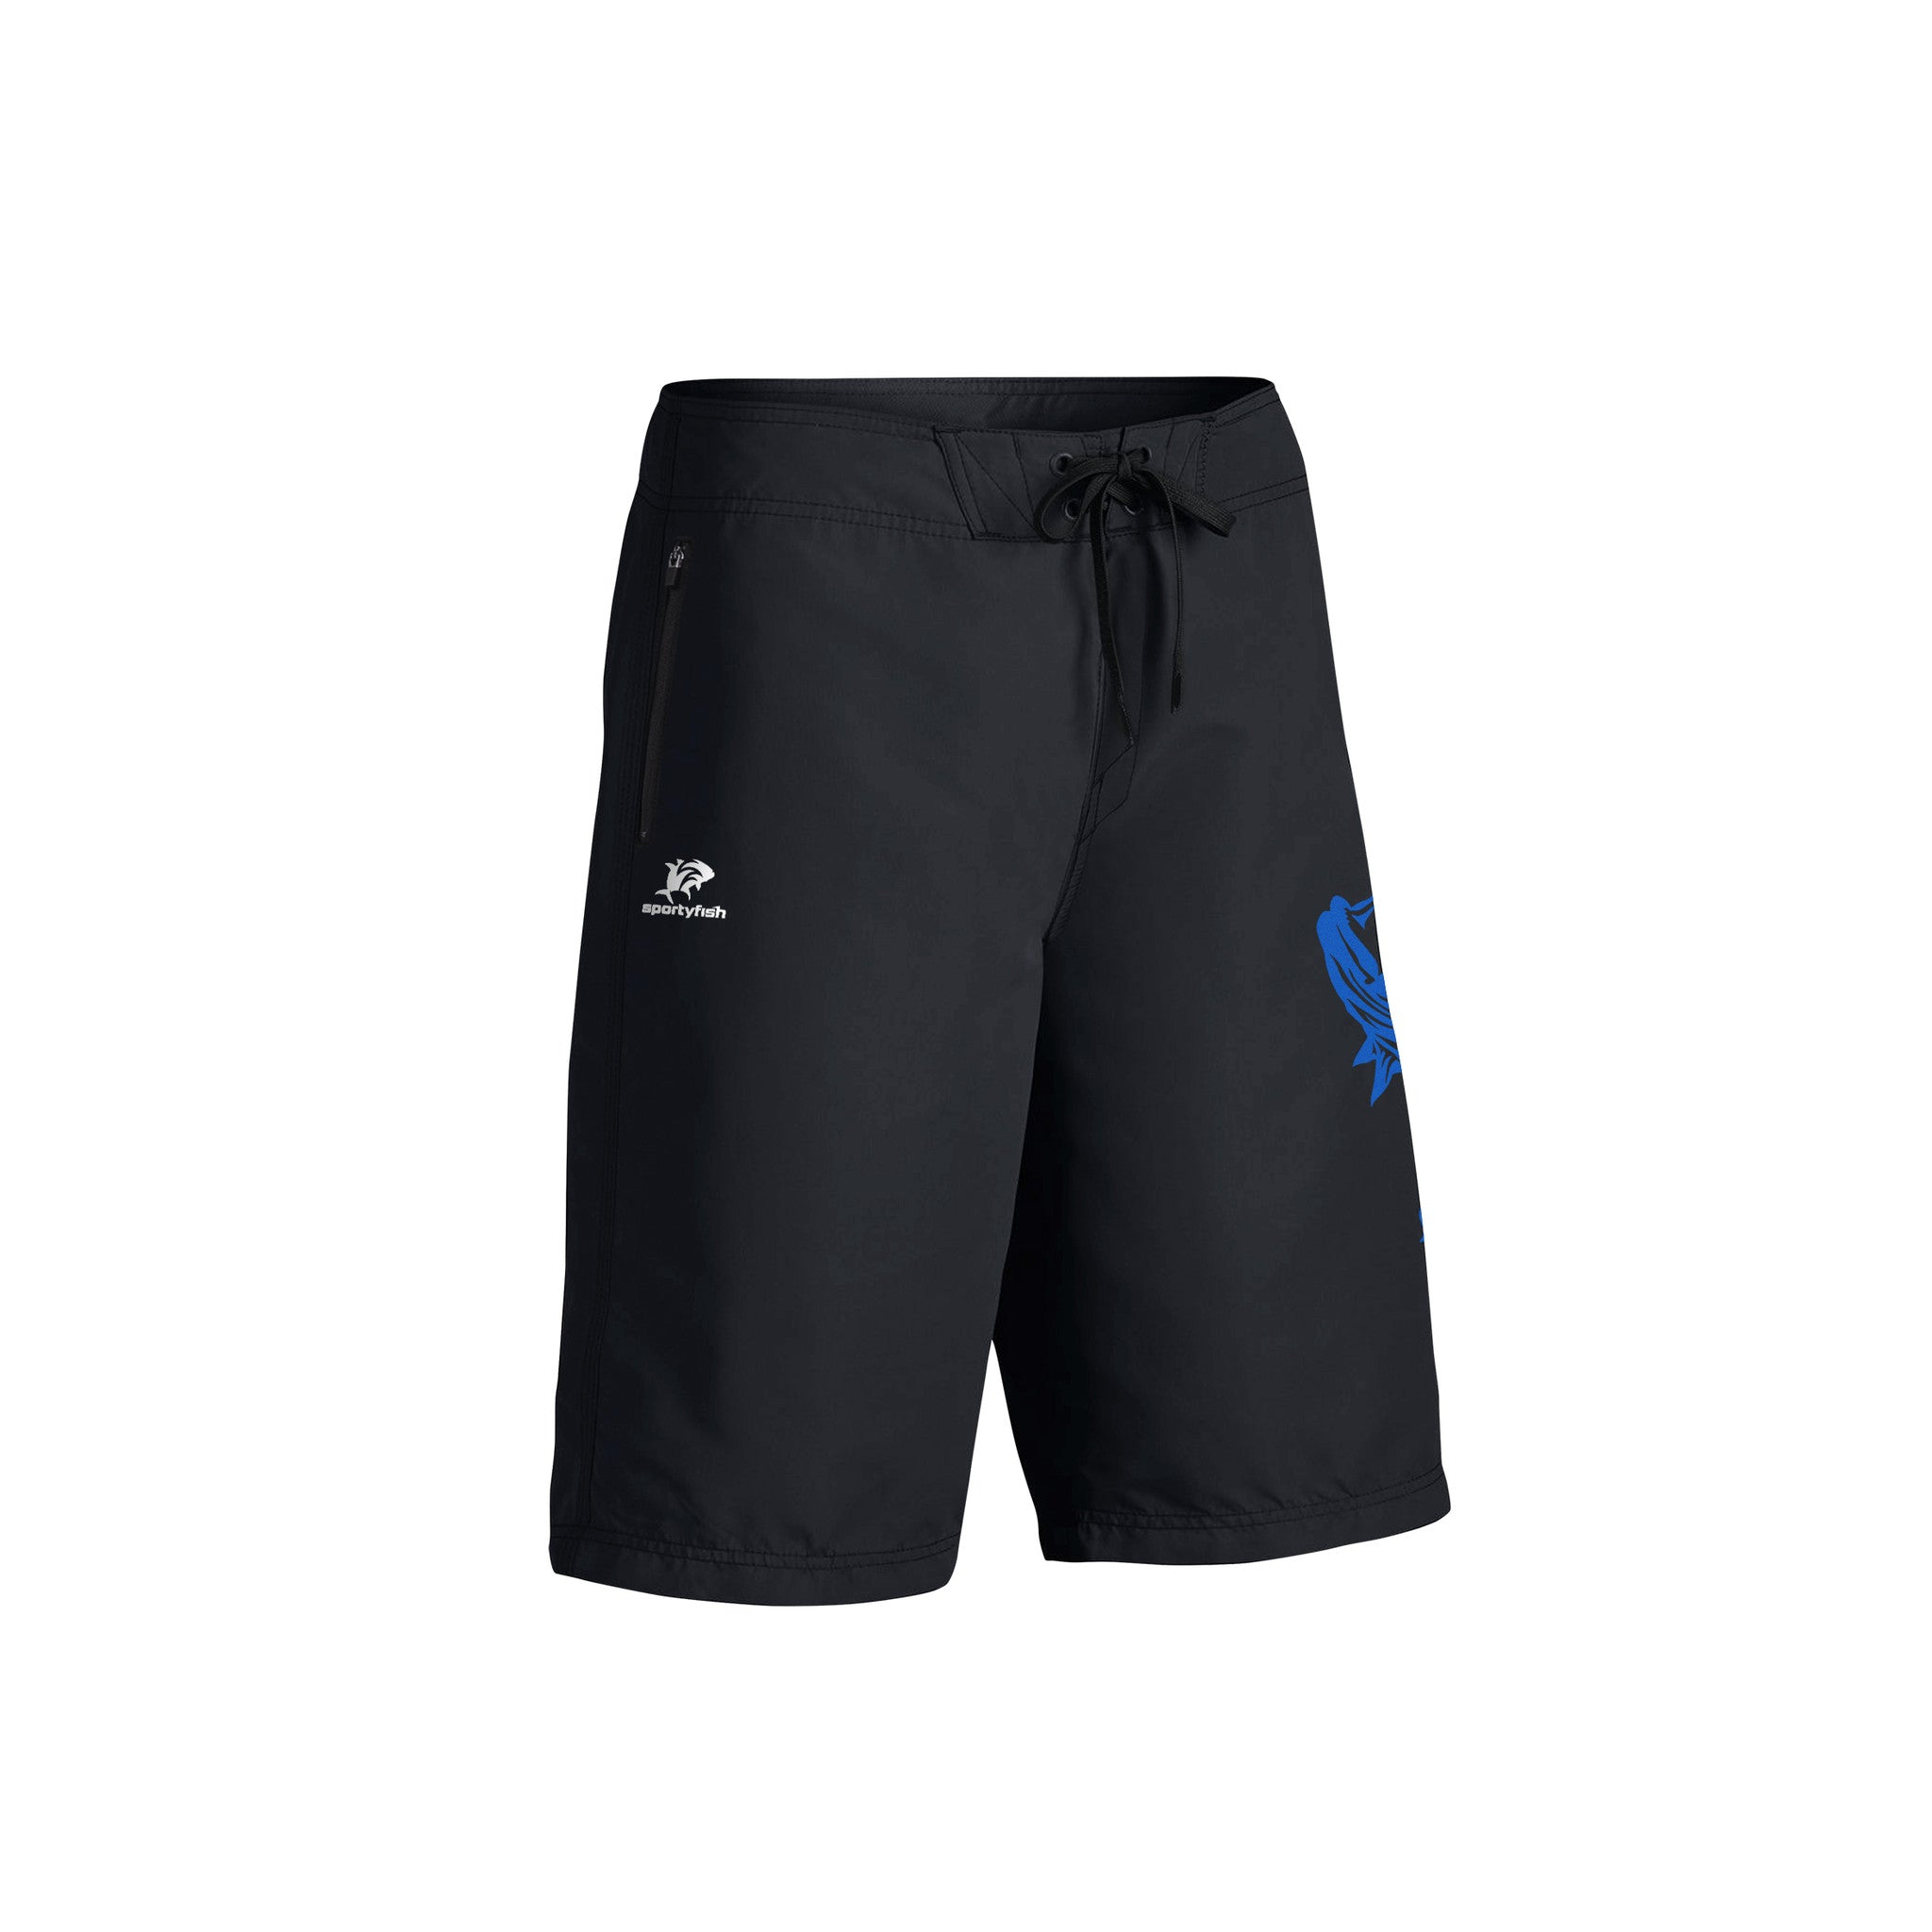 SportyFish Fury Series Board Shorts: Giant Trevally front view2